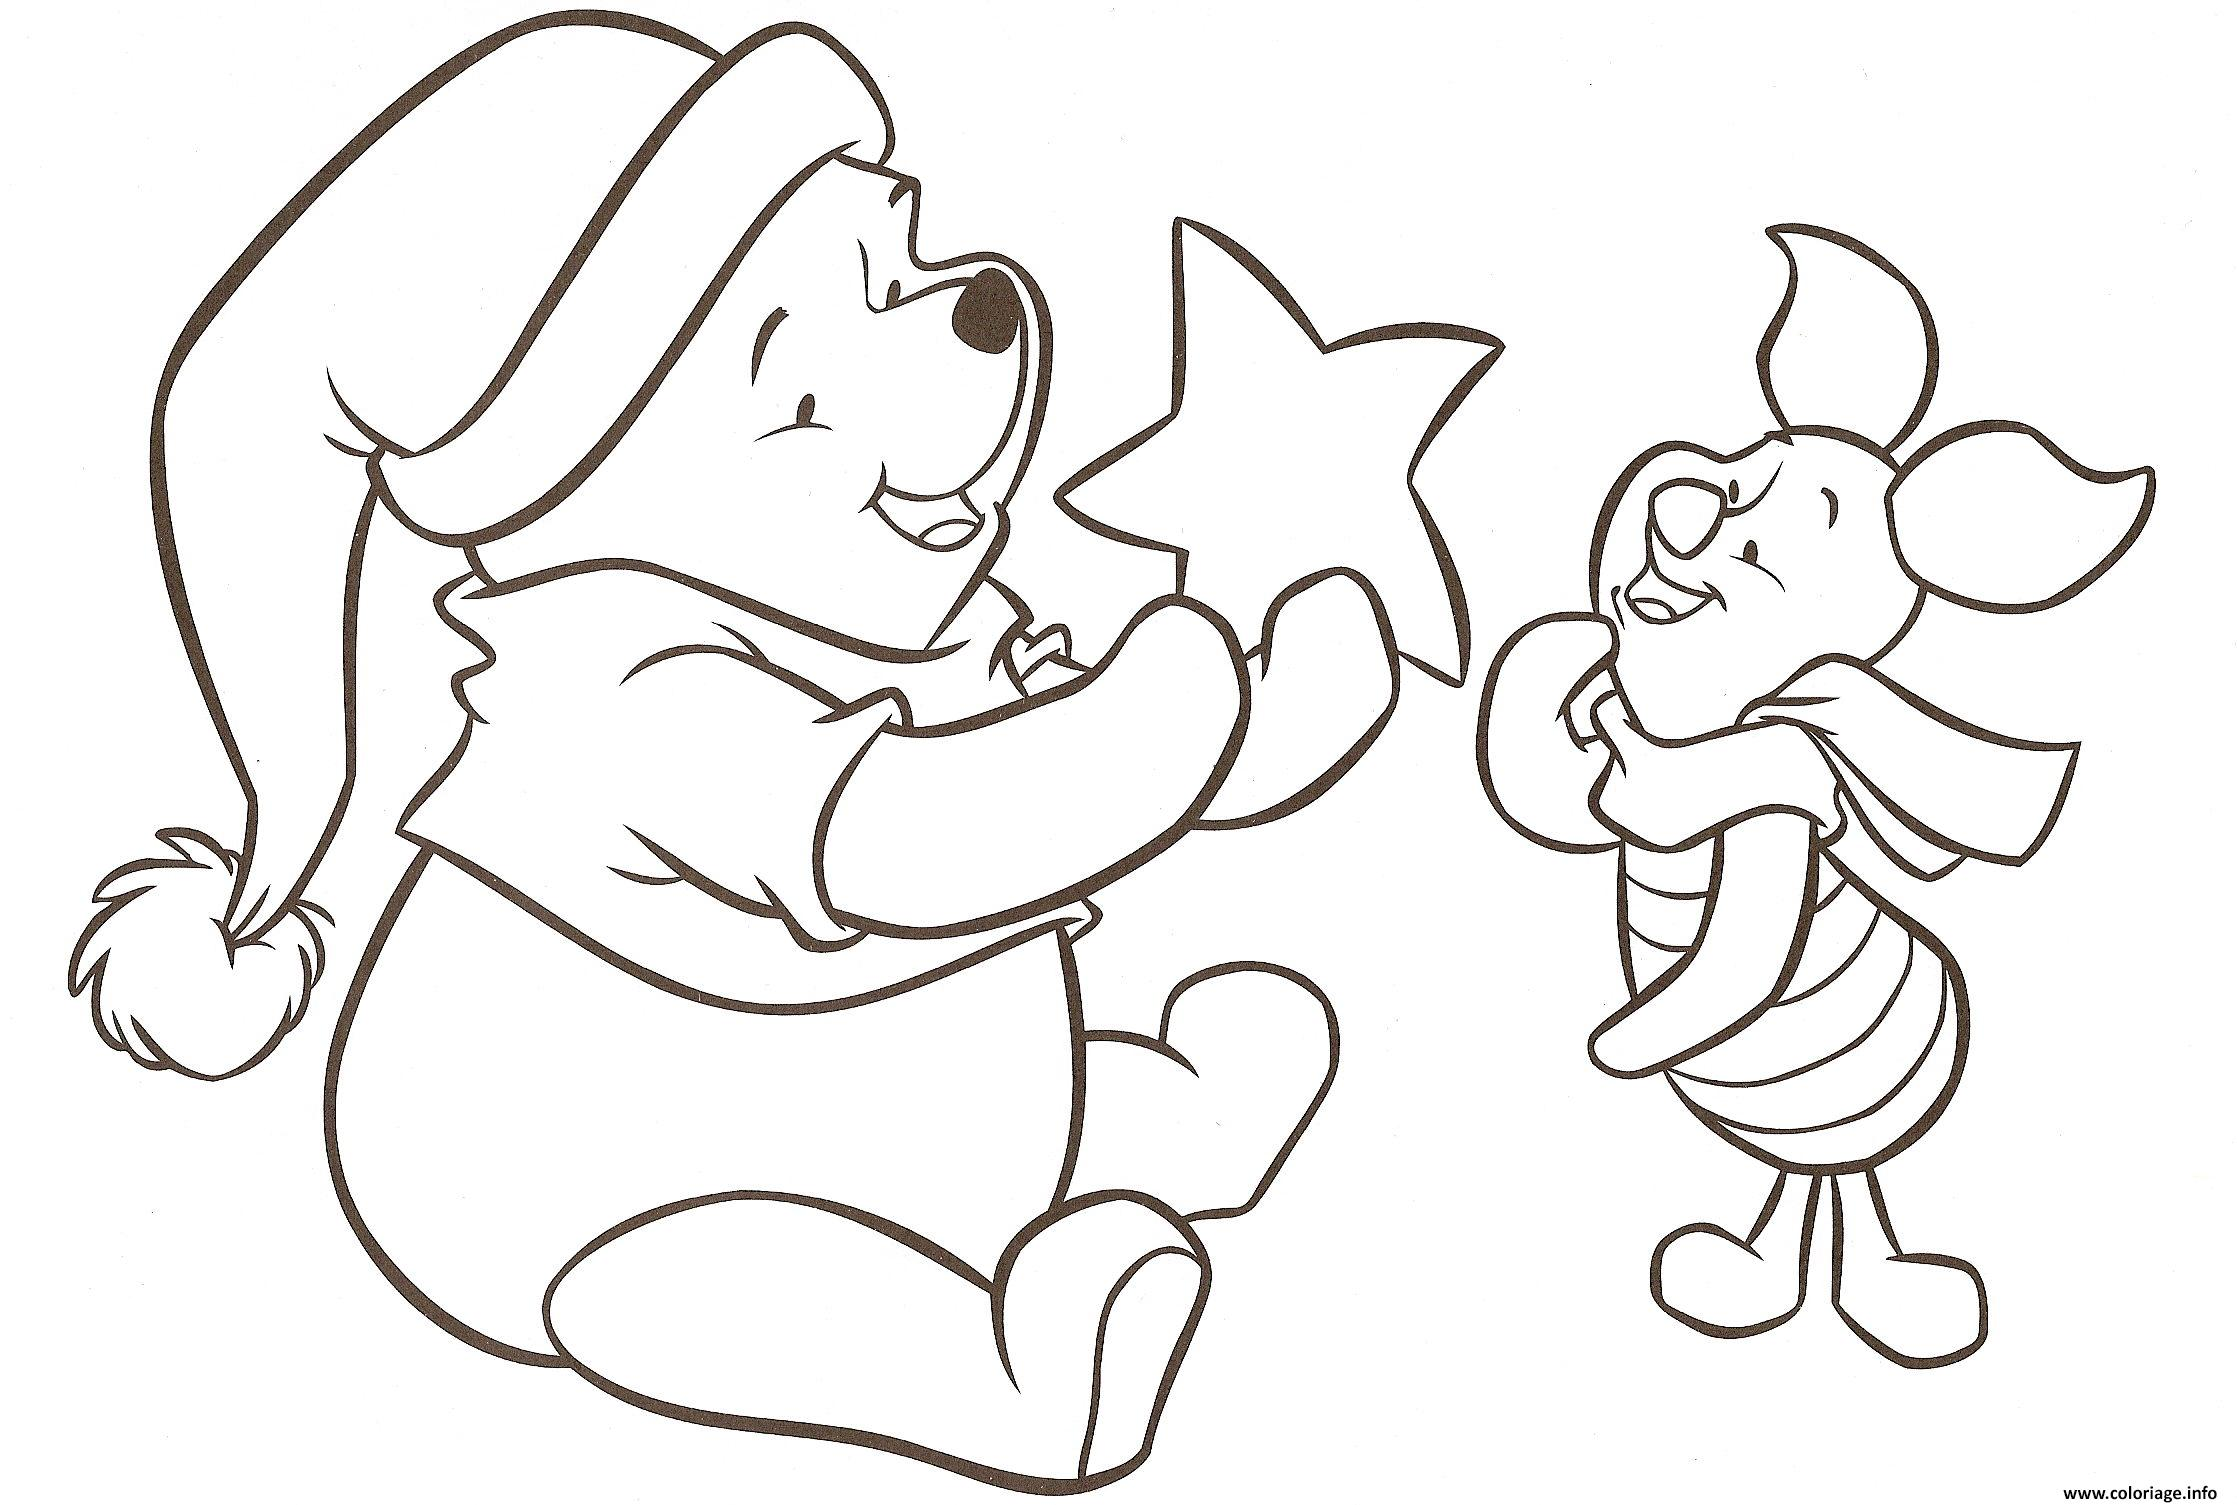 Coloriage winnie l ourson bebe facile - Coloriage d ourson a imprimer ...